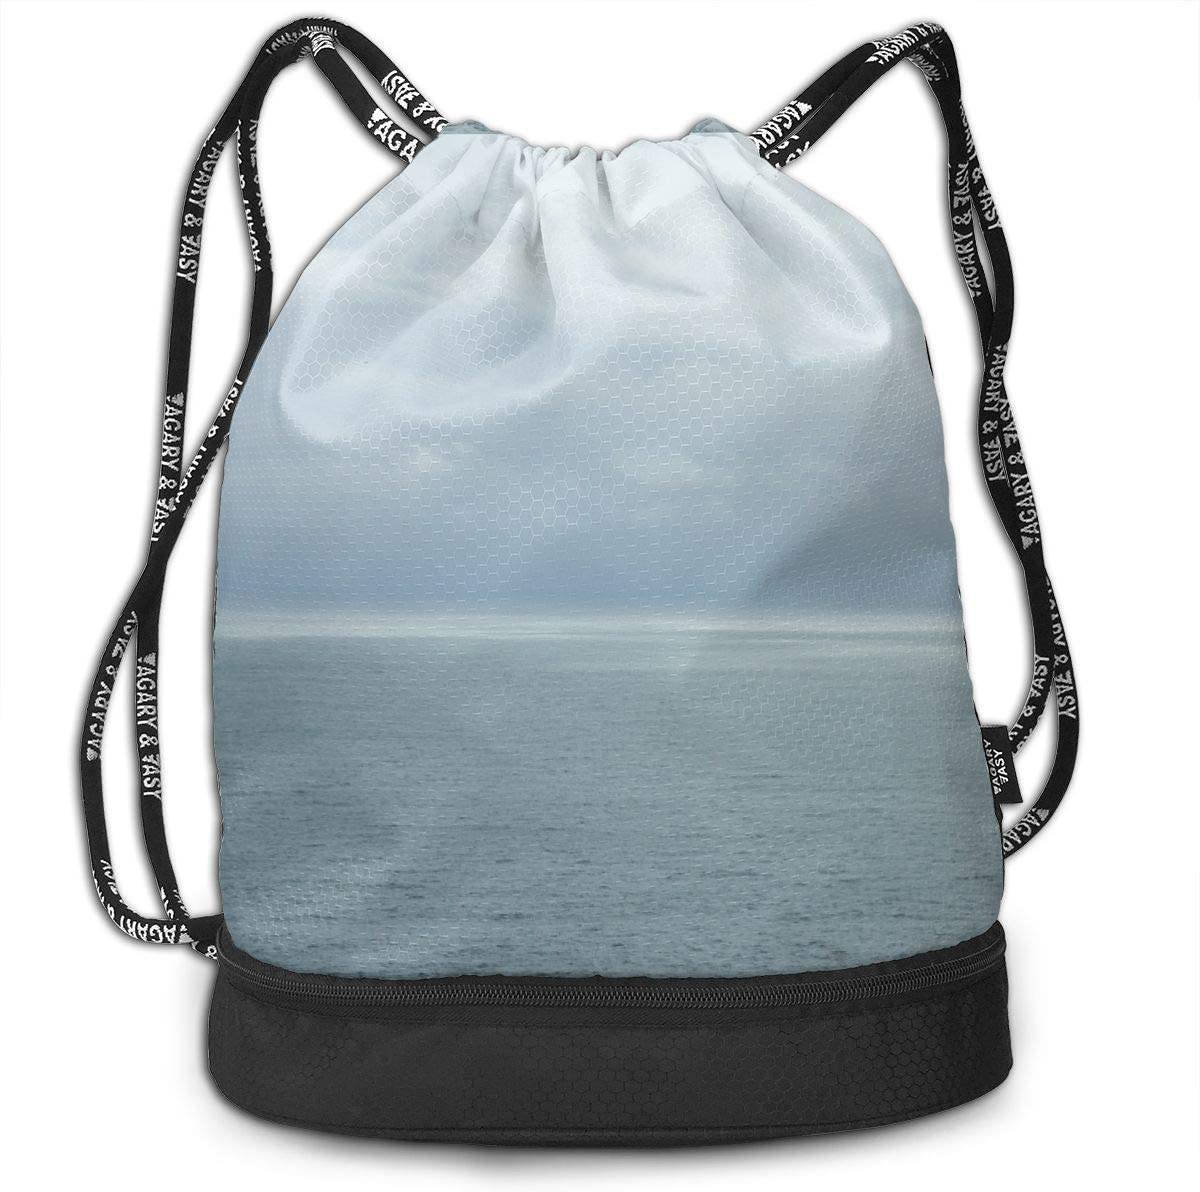 Marin County Drawstring Backpack Sports Athletic Gym Cinch Sack String Storage Bags for Hiking Travel Beach